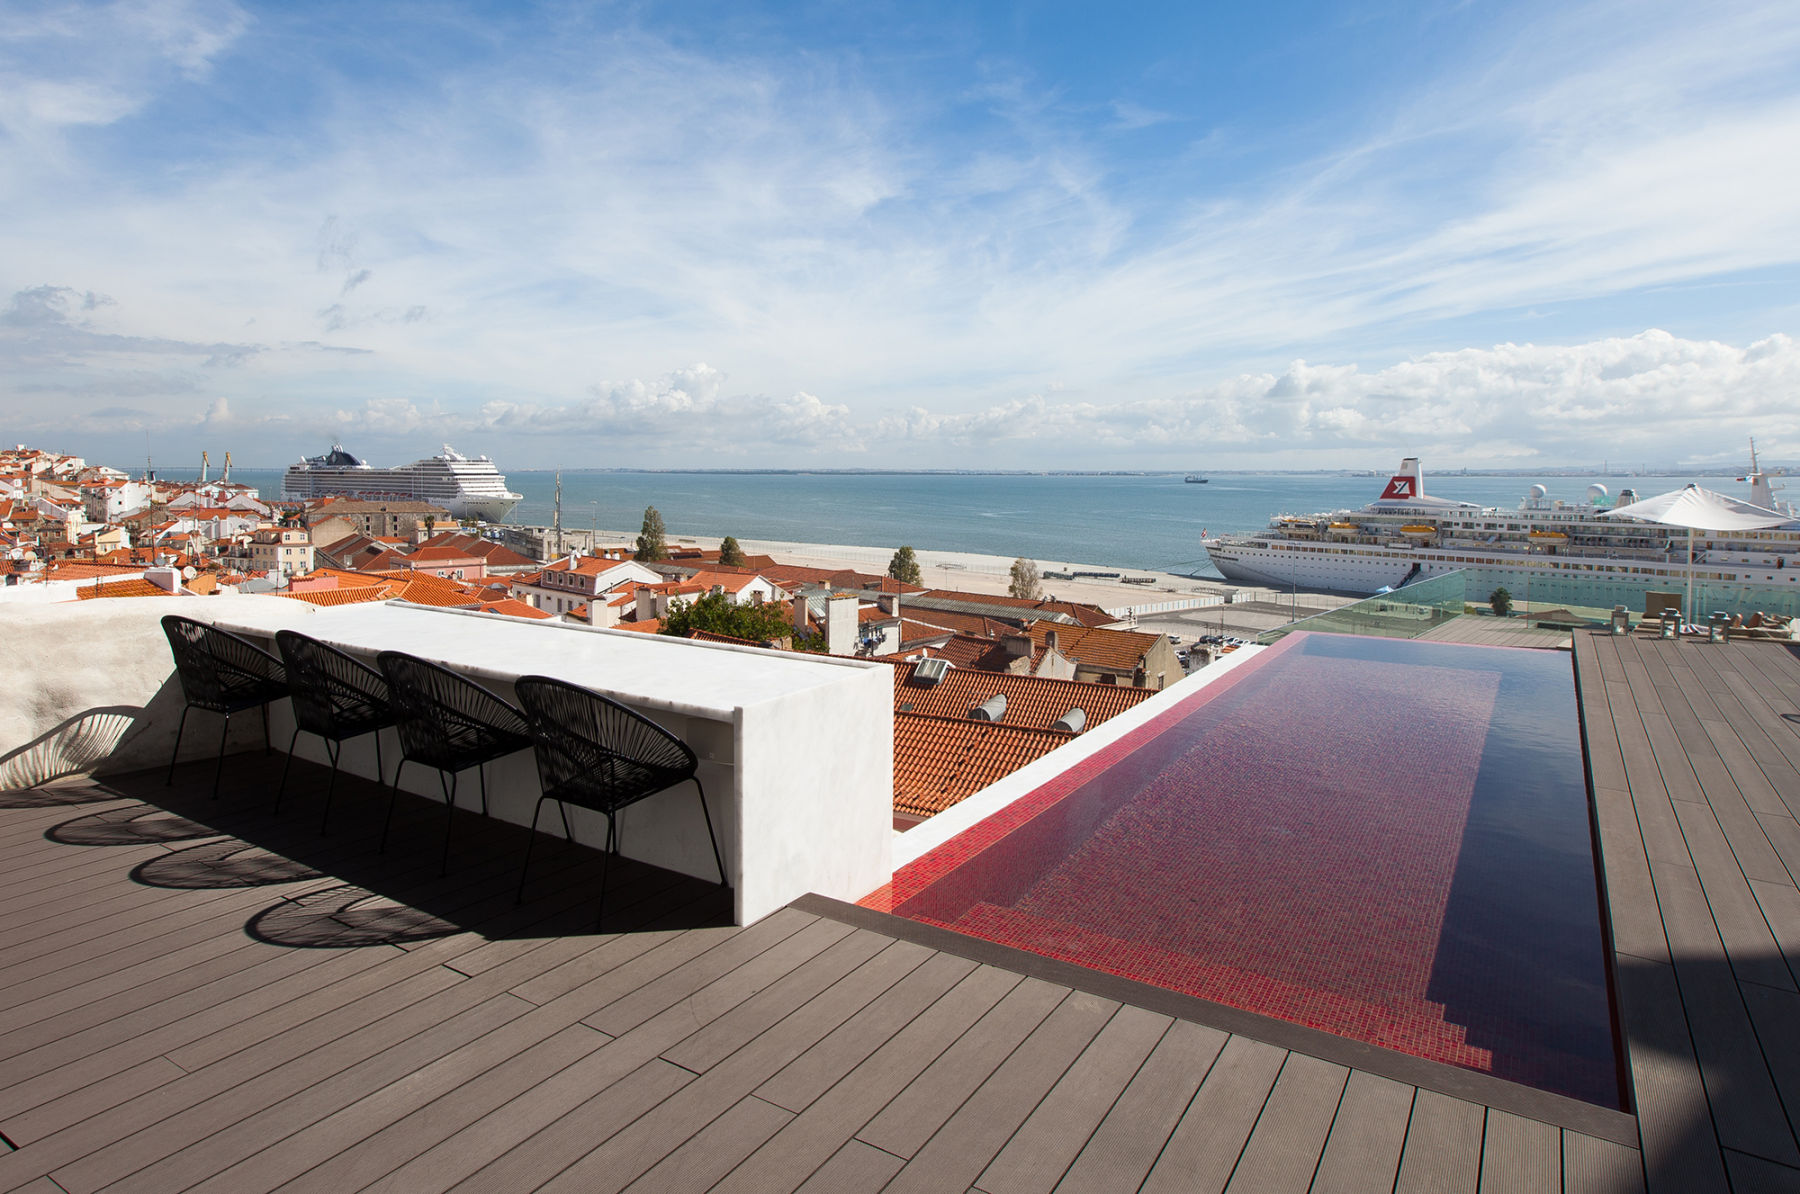 Coolest list of Hotels in Portugal - The coolest hotels in Portugal, handpicked by two Portuguese sisters.